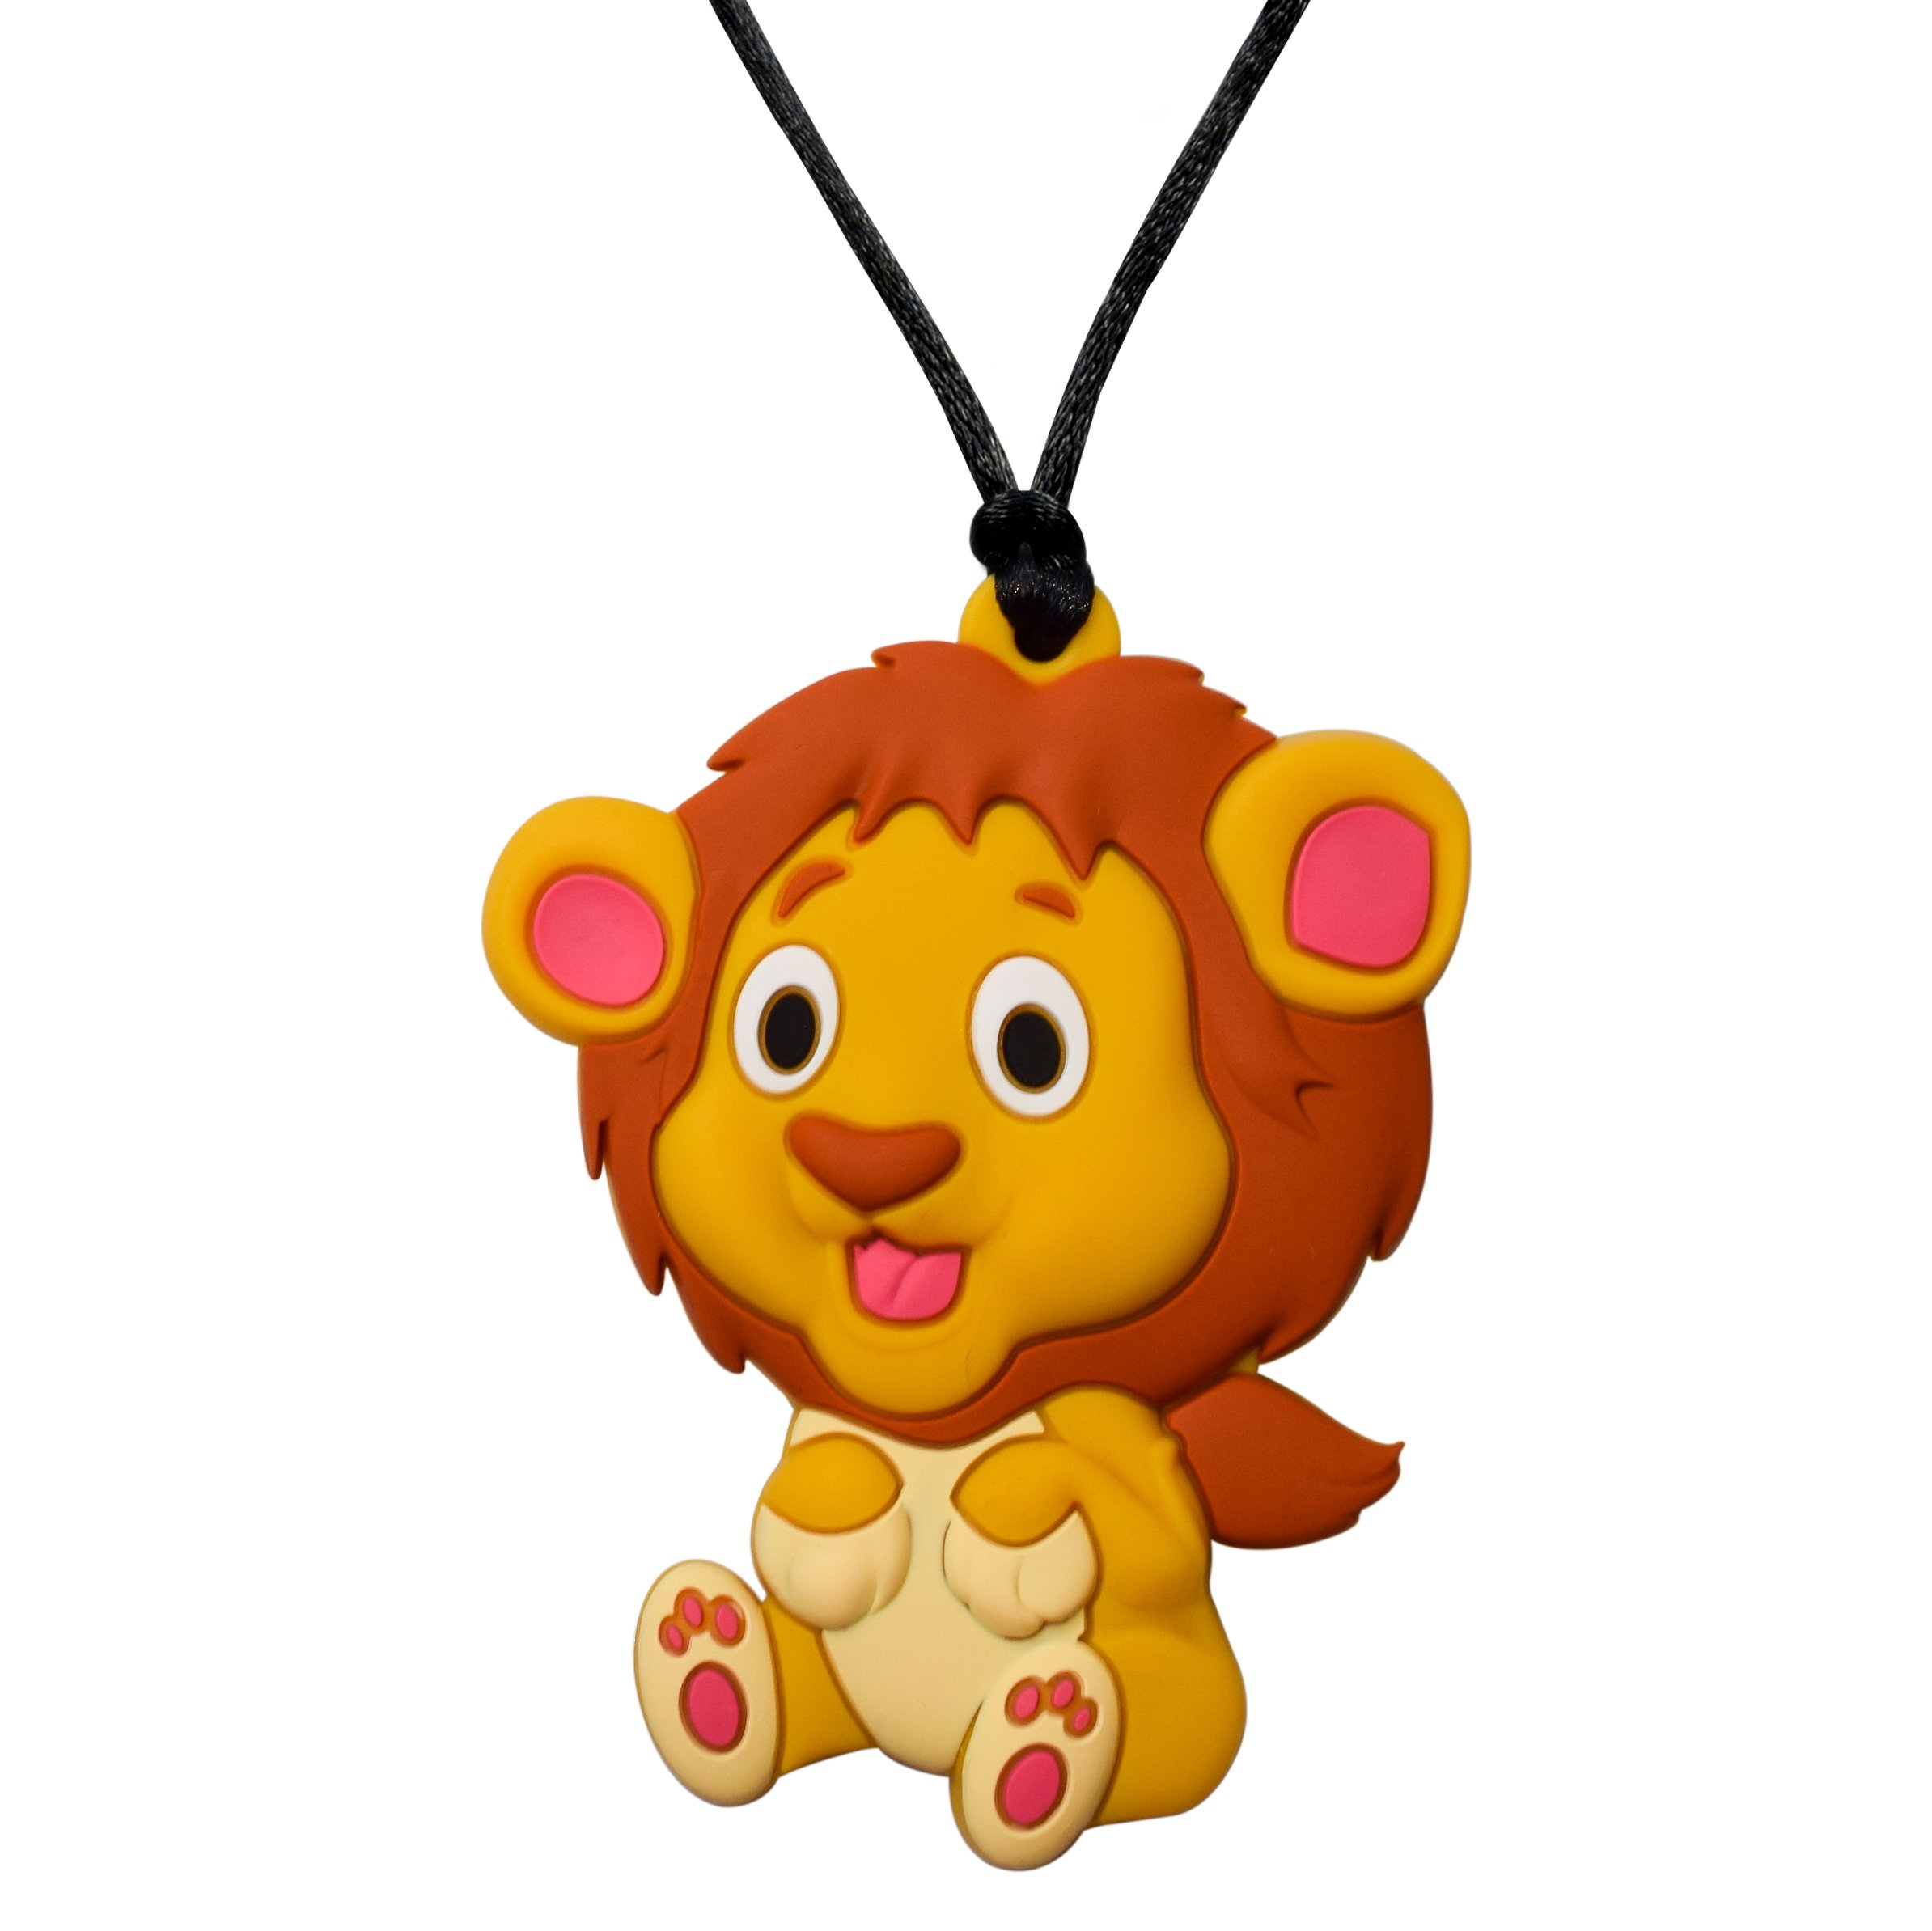 Sensory Oral Motor Aide Chewelry Necklace - Chewy Jewelry for Sensory-Focused Kids with Autism or Special Needs - Calms Kids and Reduces Biting/Chewing – (Lion Pendant)